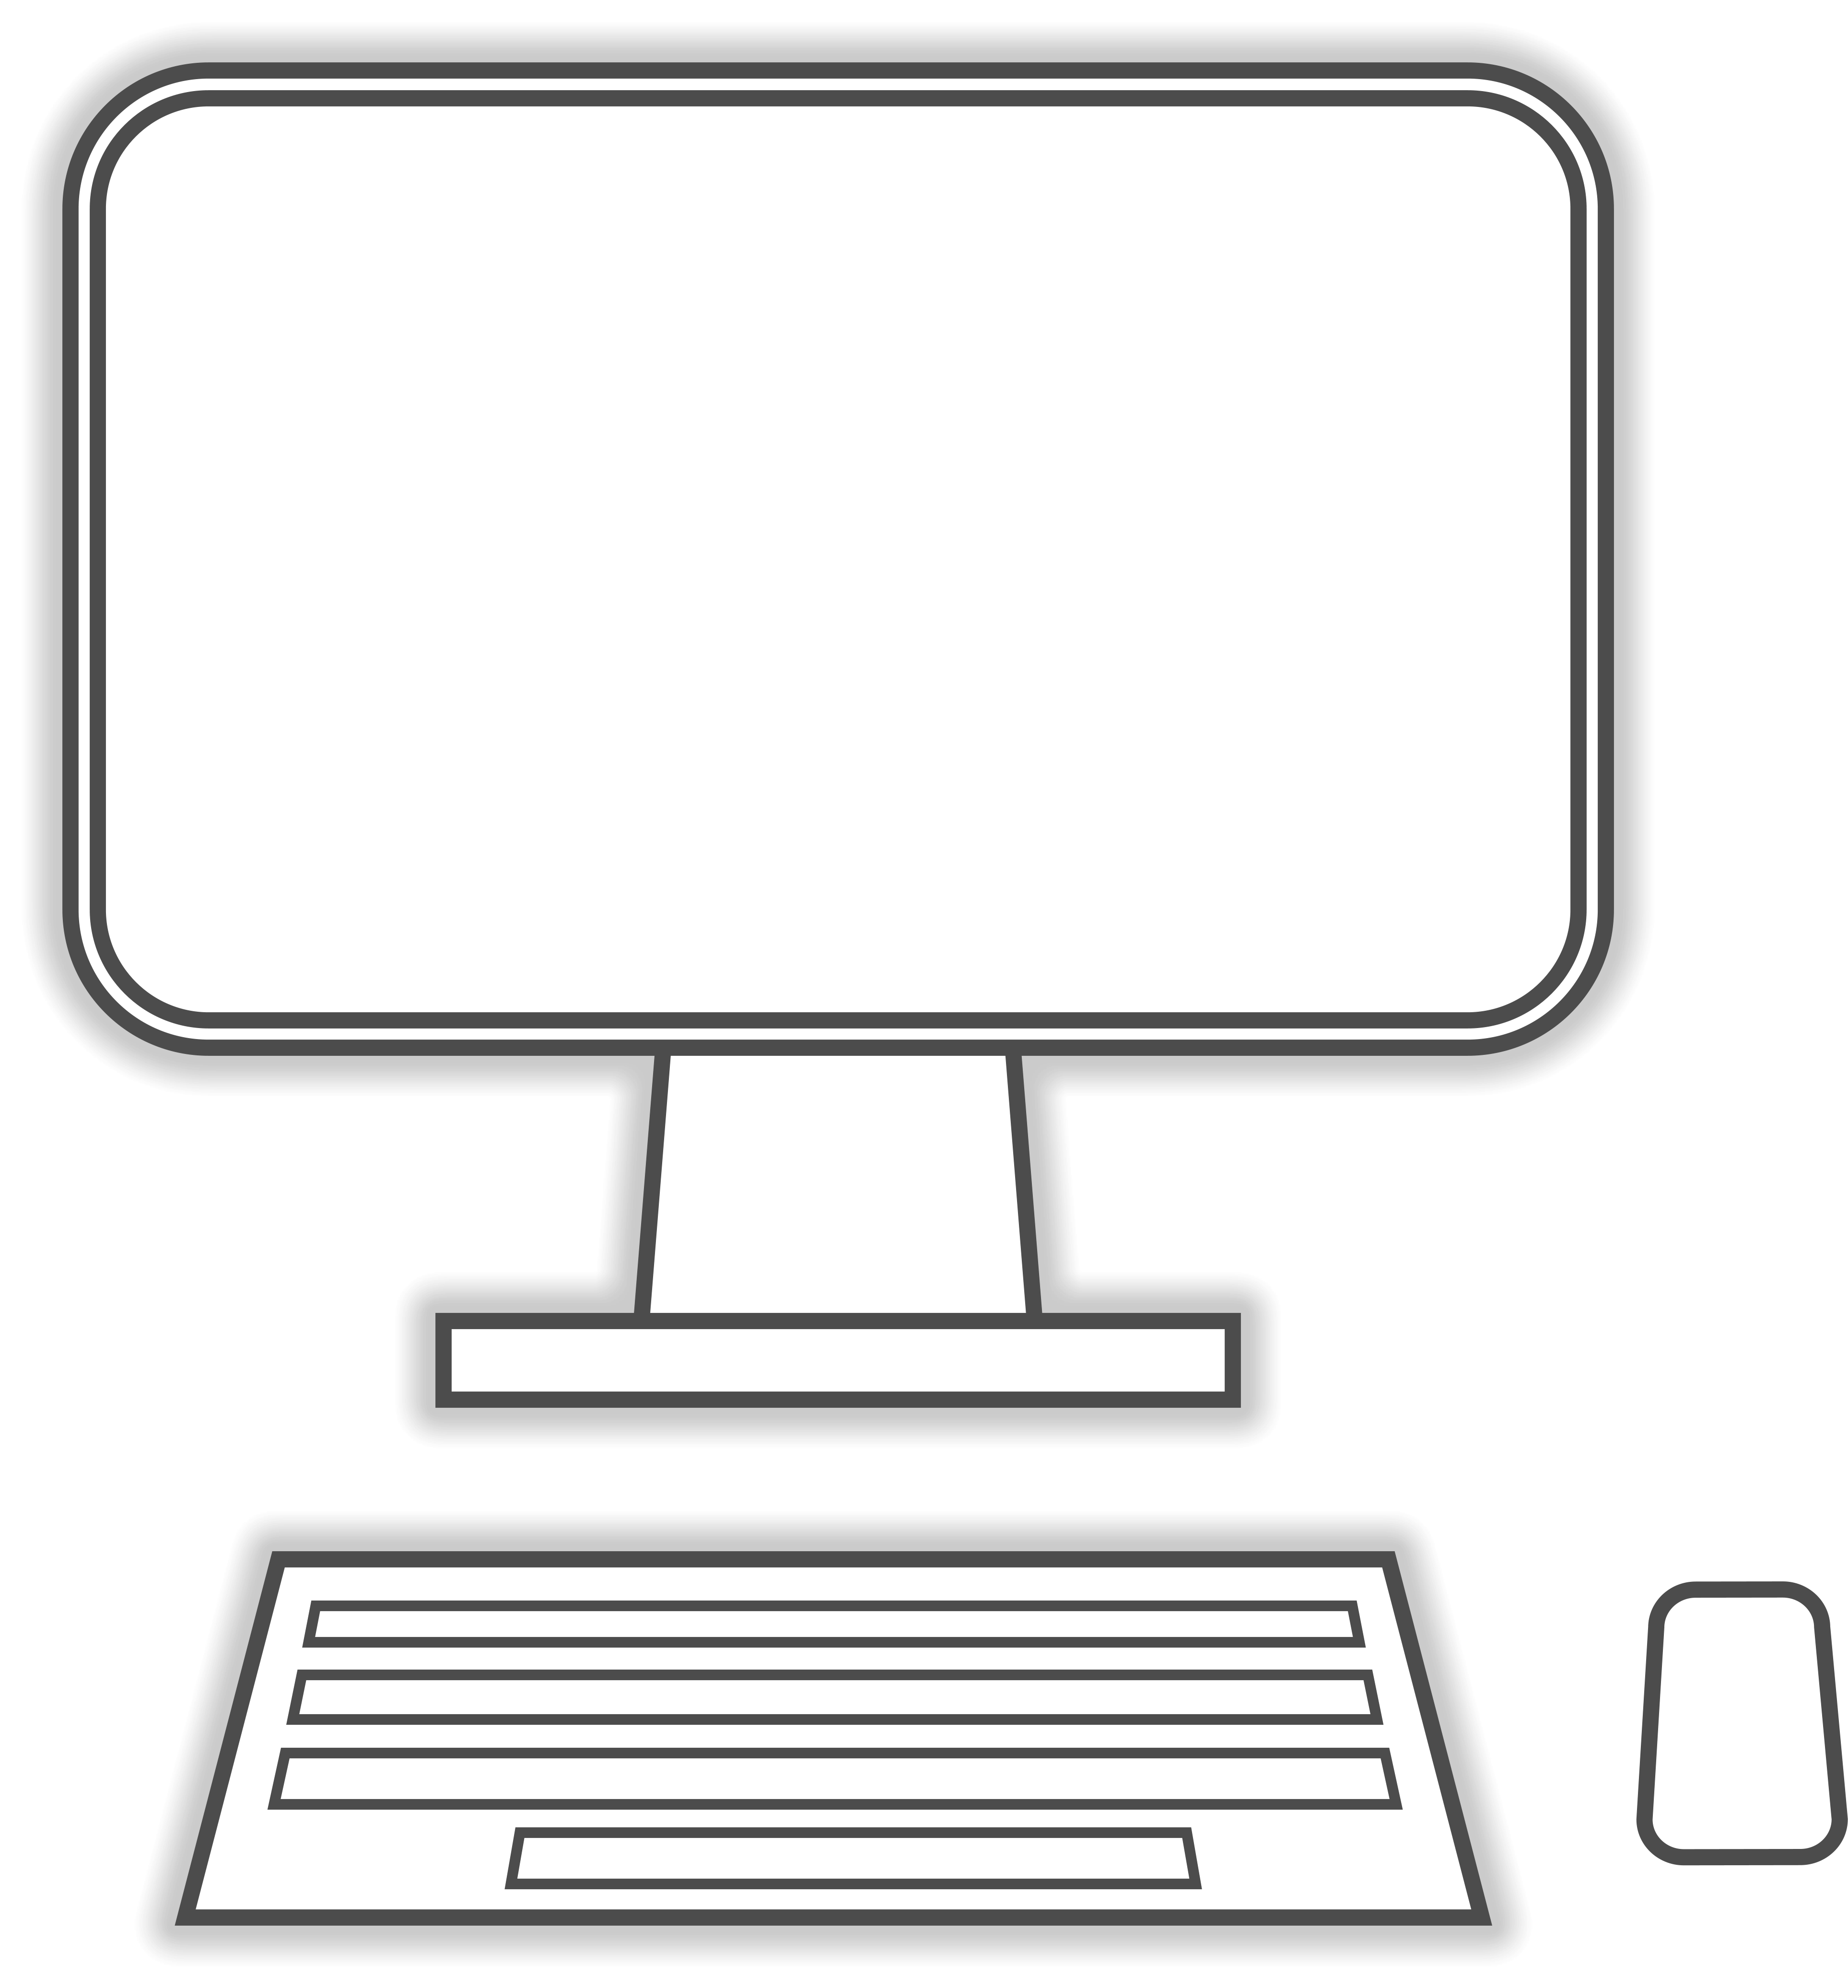 Computer As Sketch Free Image